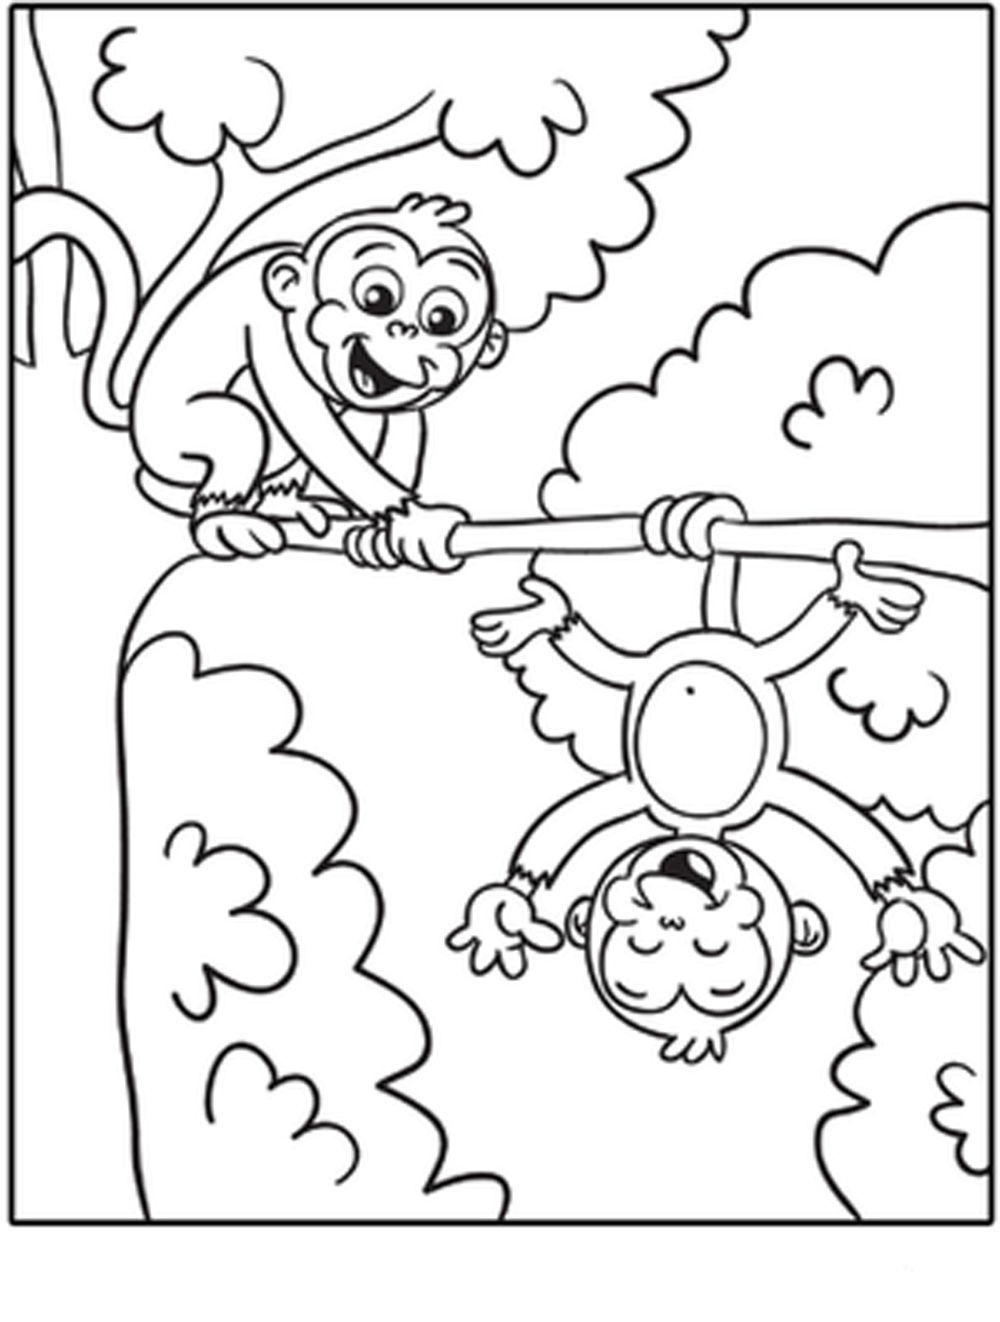 Free-Printable-Monkey-Coloring-Pages | | Bestappsforkids - Free Printable Monkey Coloring Pages